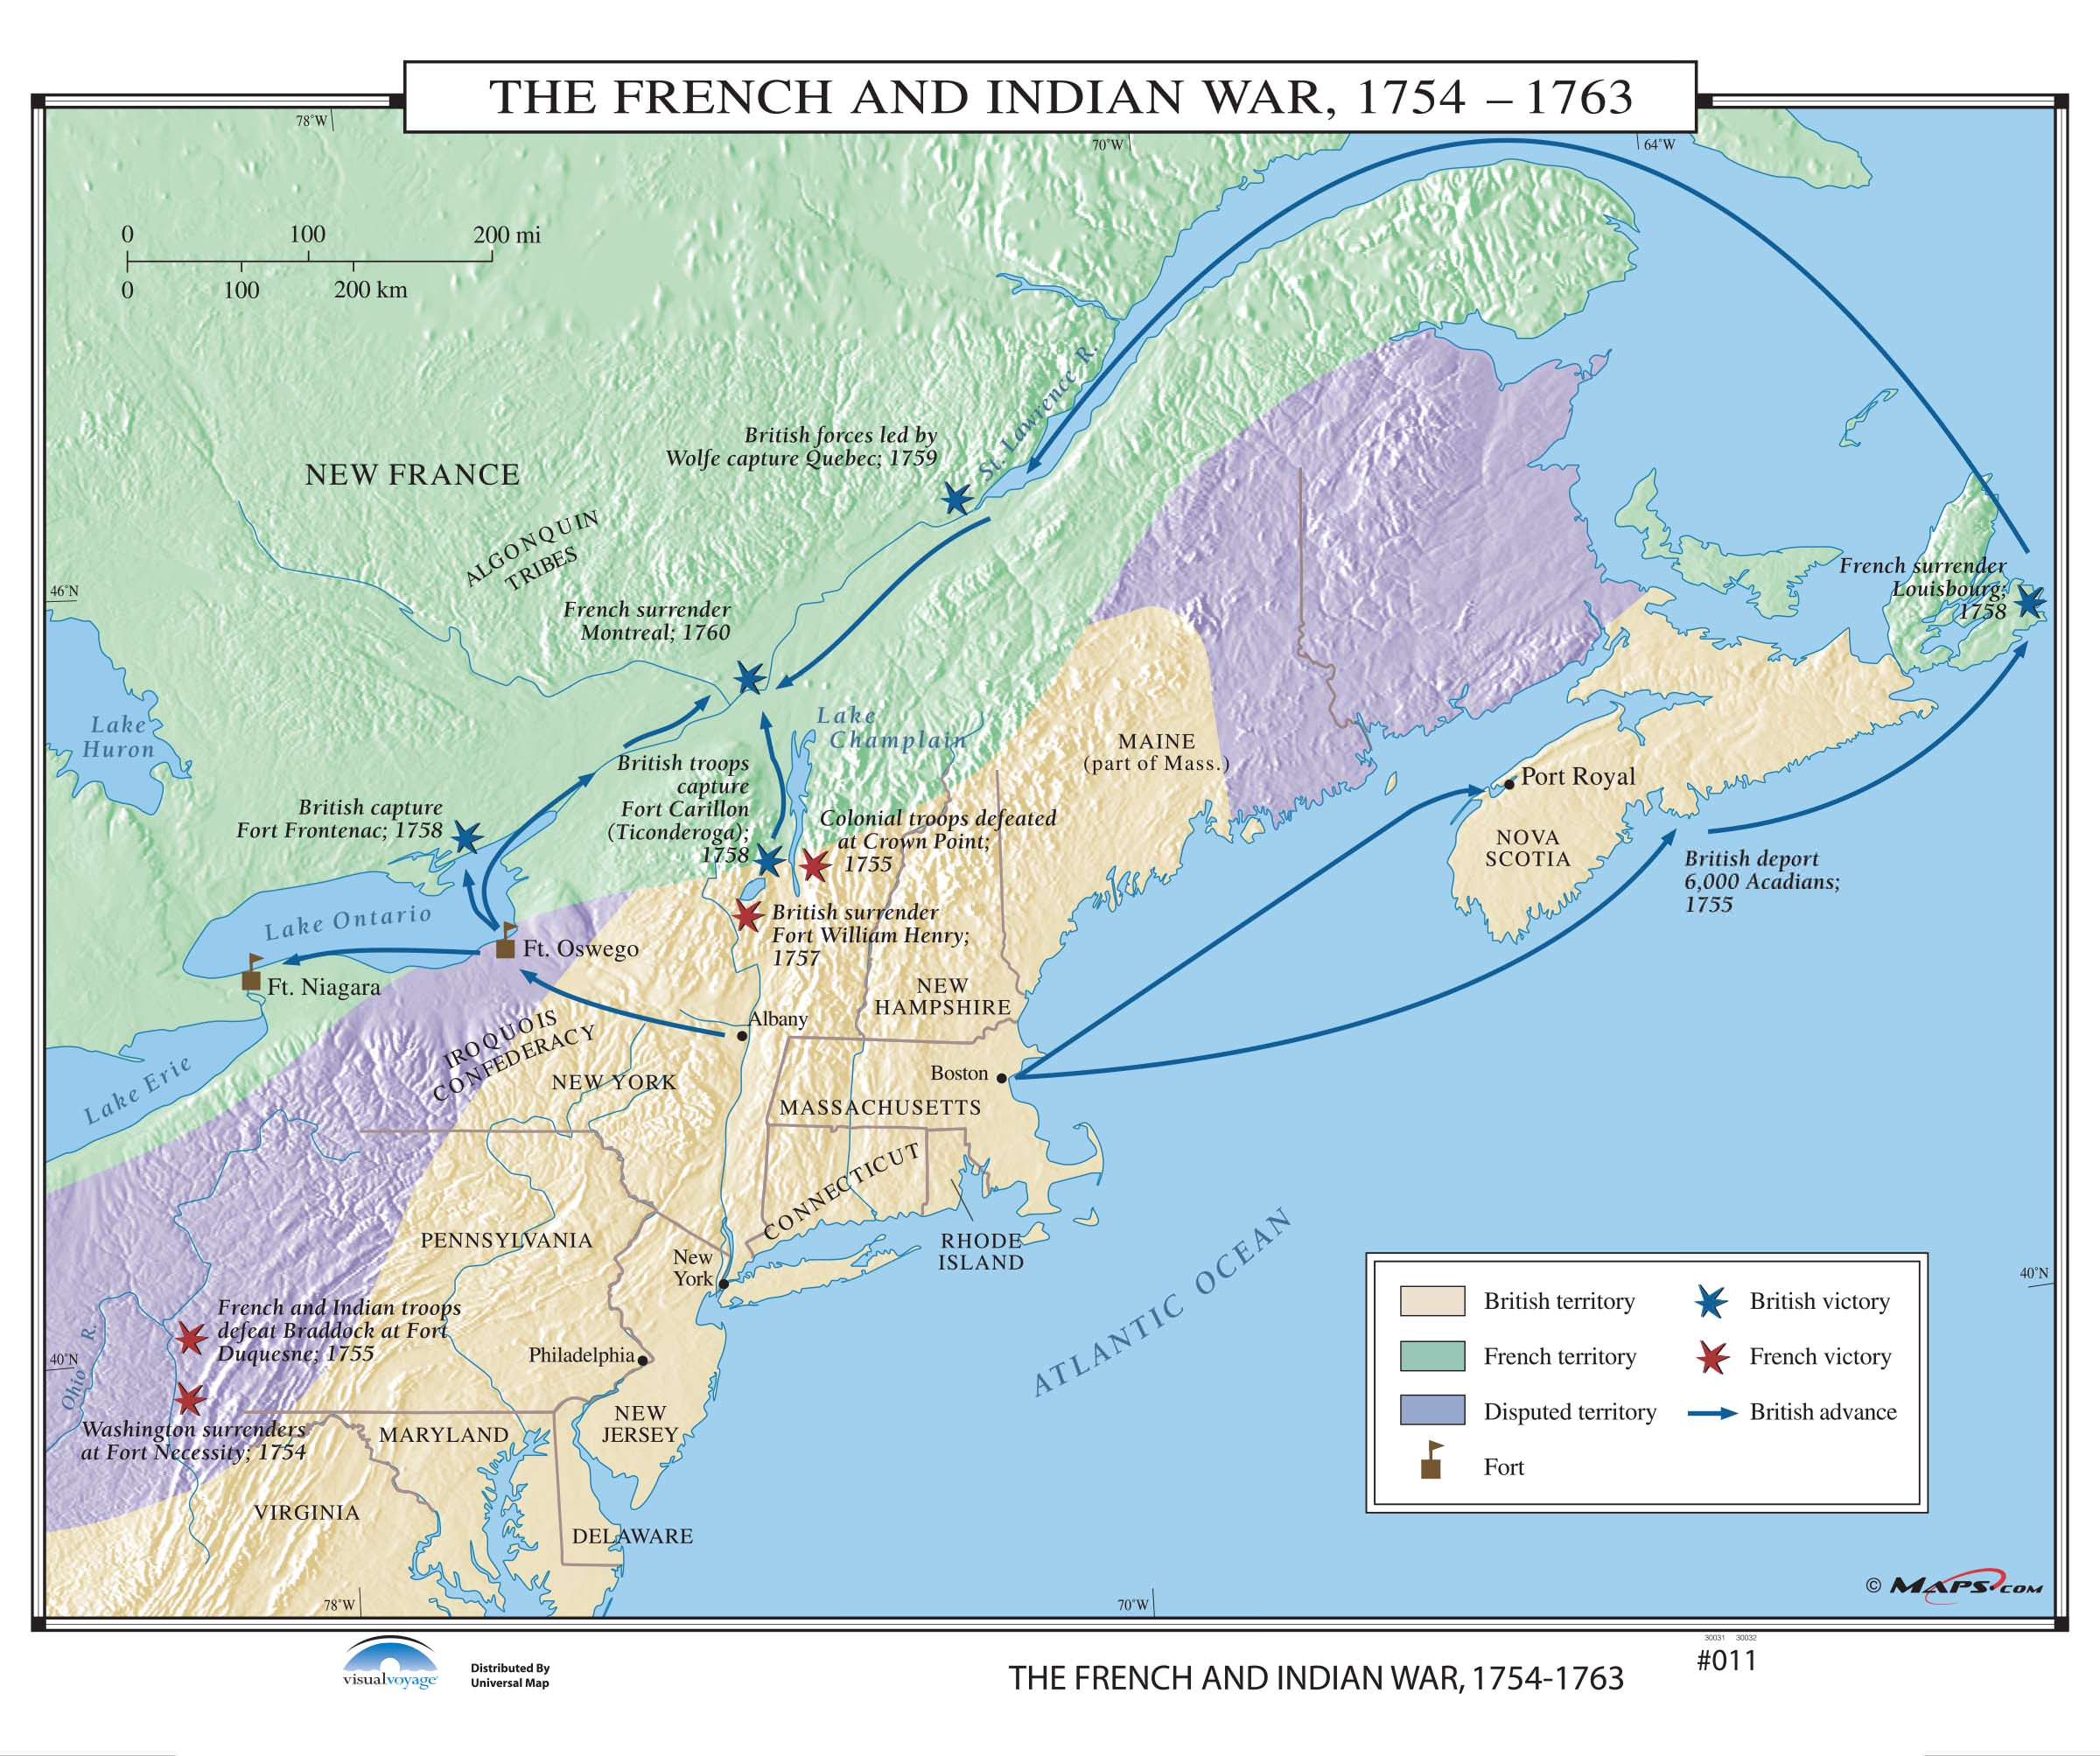 011 The French Amp Indian War On Roller W